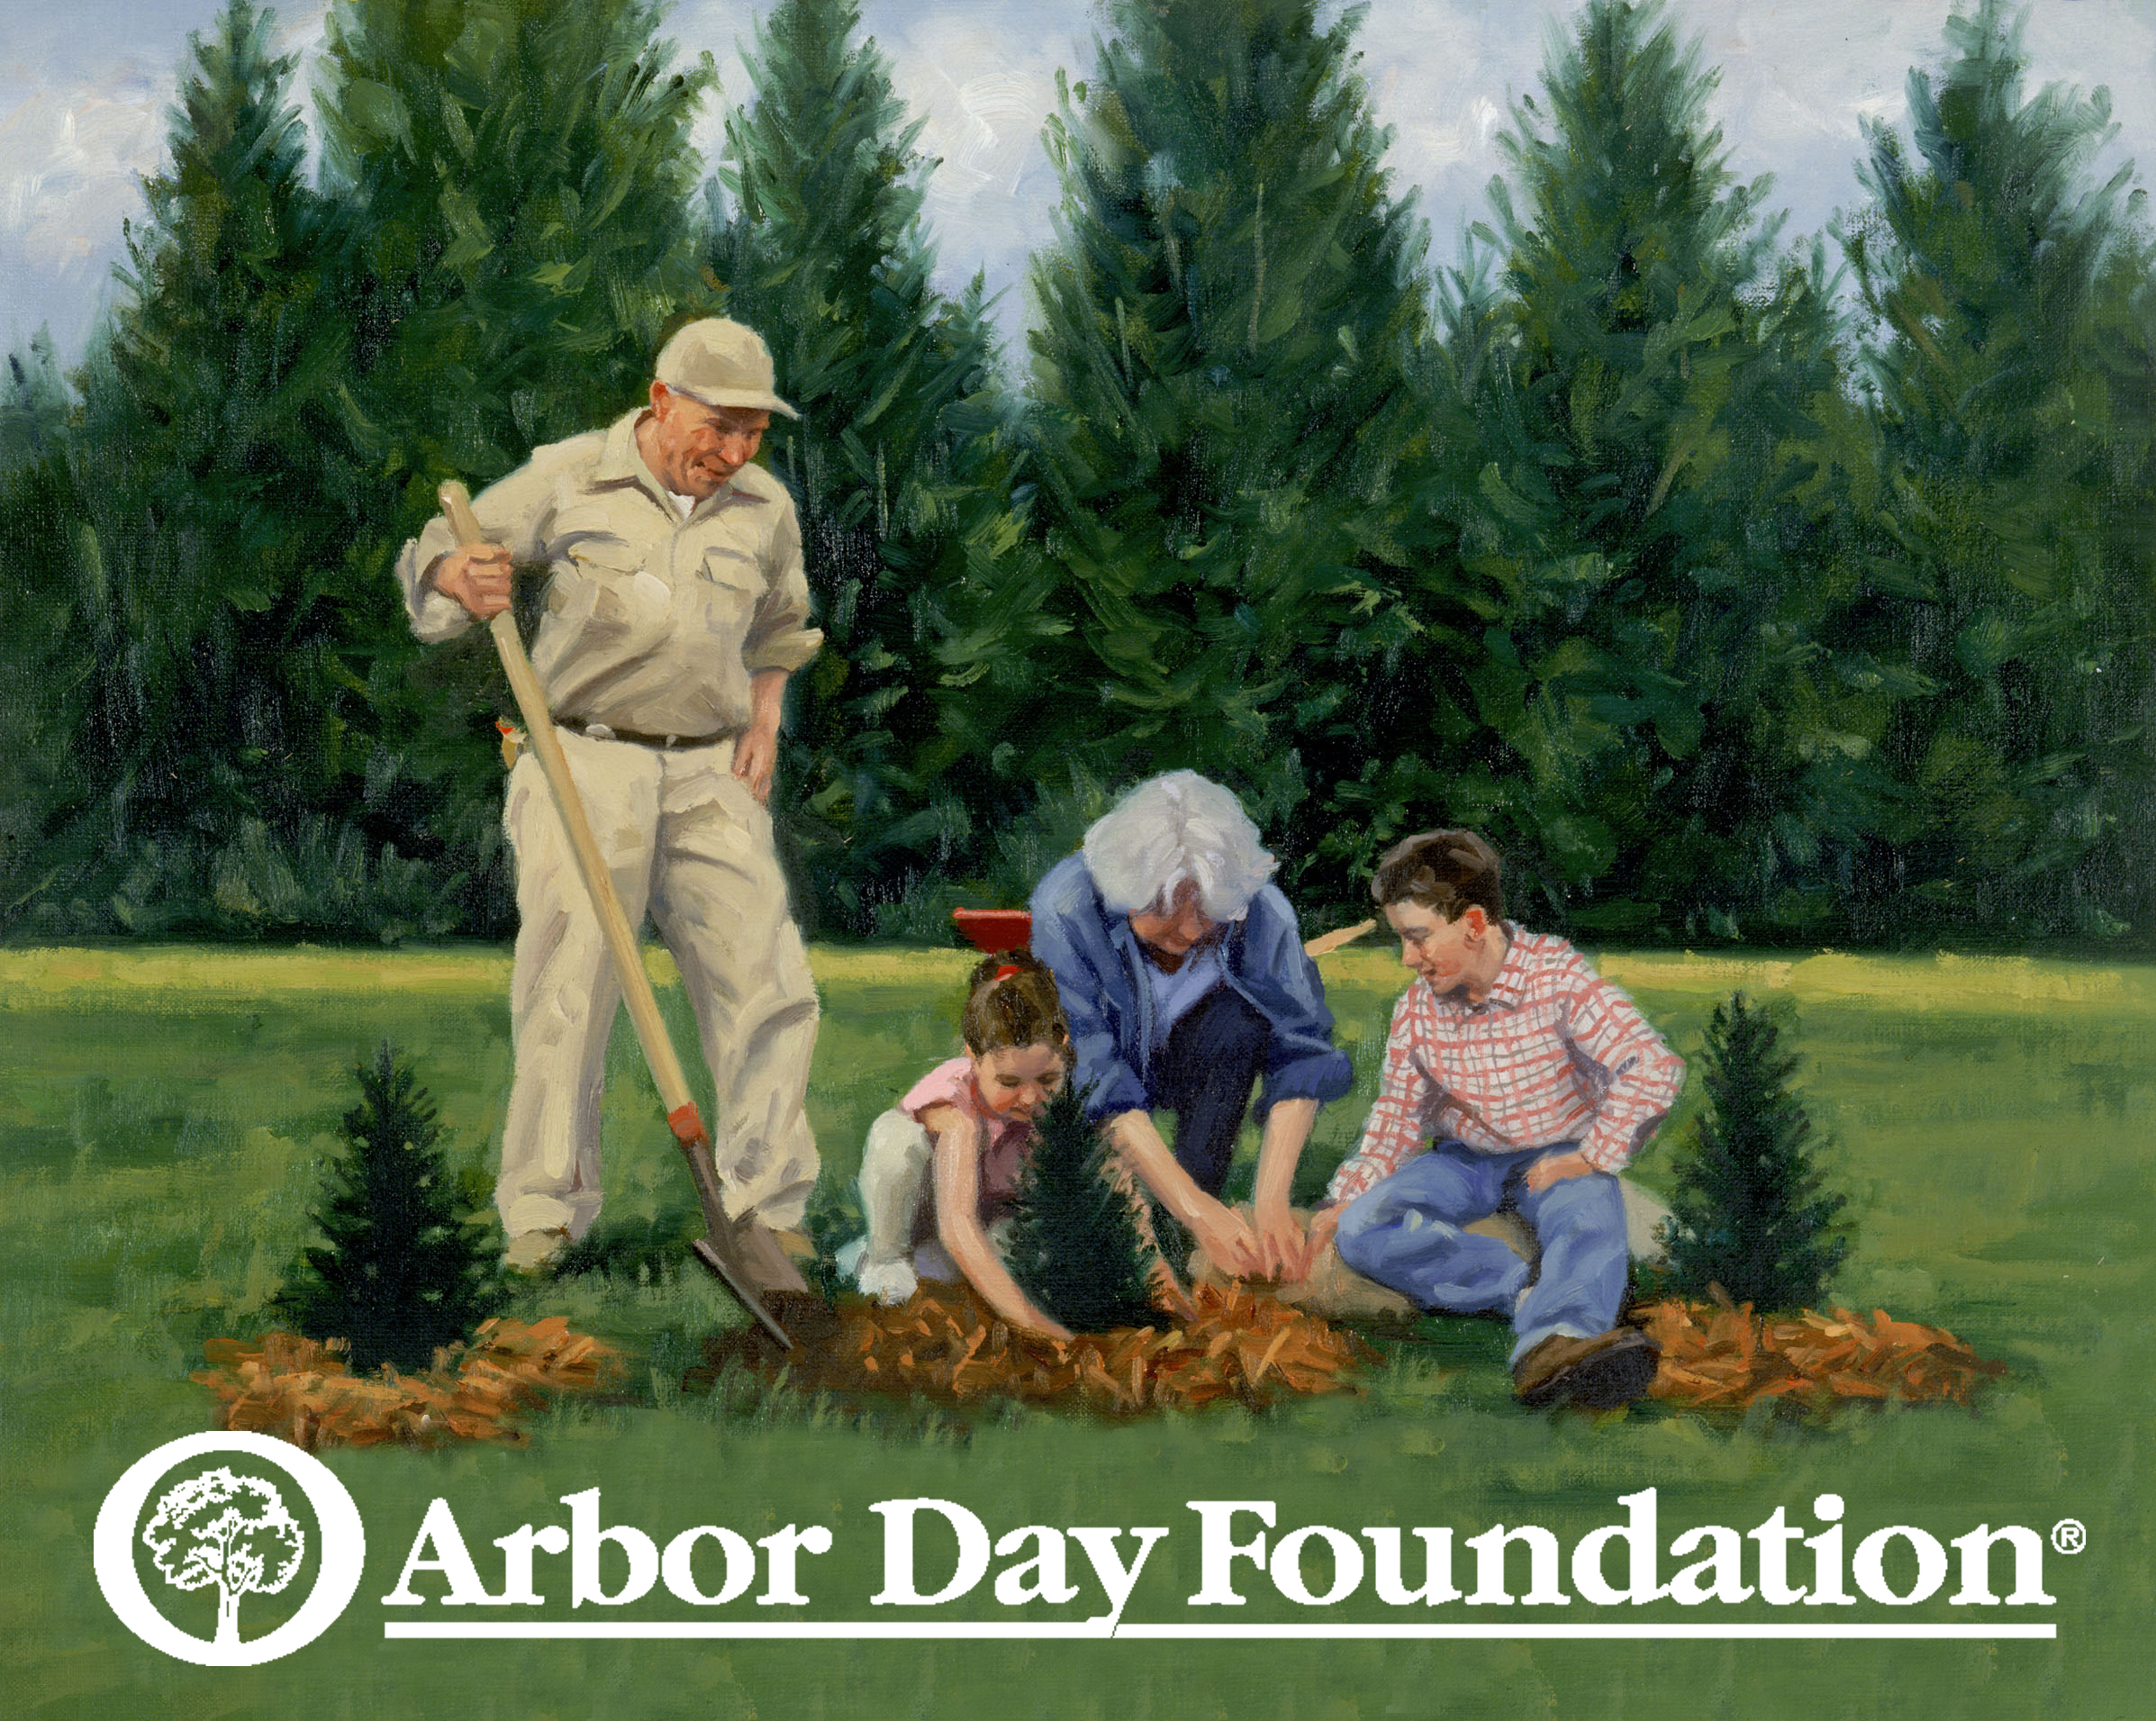 Credit: Arbor Day Foundation